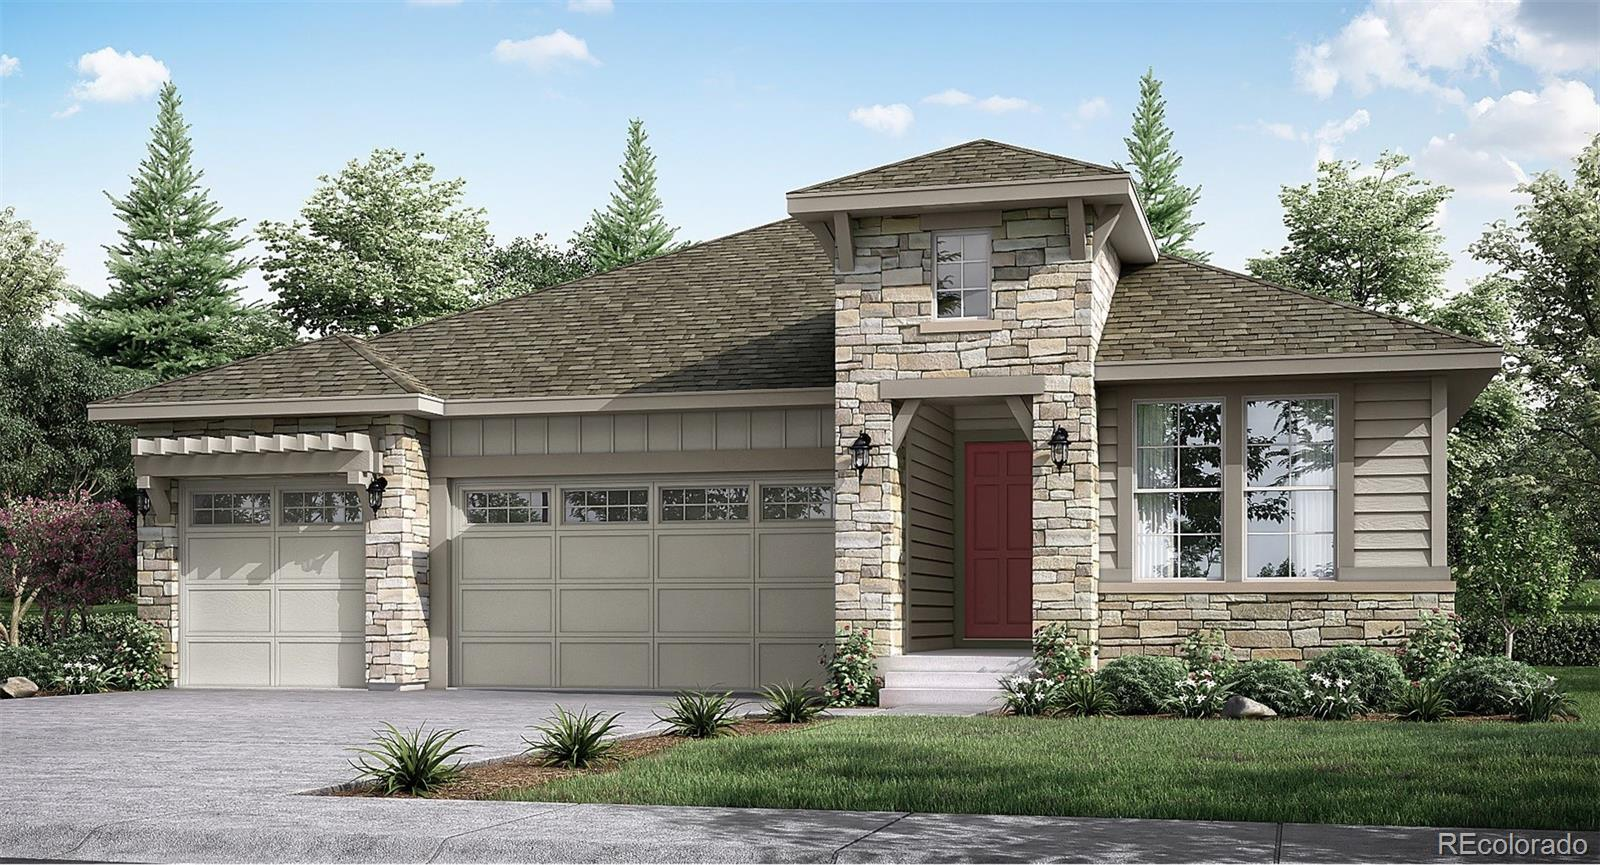 """Anticipated completion June 2020. Beautiful Hamilton Ranch plan by Lennar in this 55+ community features 3 beds, 2 baths, great room, kitchen & unfinished walkout basement for future expansion, 3 car garage, extended covered deck and more! Beautiful finishes and upgrades include stained maple cabinets (kona), granite countertops, 12x24 tile in baths and  extended 9"""" wide vinyl plank flooring.  Lennar provides the latest in energy efficiency and state of the art technology with several fabulous floorplans to choose from. Energy efficiency, and technology/connectivity seamlessly blended with luxury to make your new house a home. Inspiration offers single family homes for every lifestyle. What some builders consider high-end upgrades, Lennar makes a standard inclusion. Conveniently located close to shopping, dining, entertainment, and more - amenities abound. Easy commute to Downtown Denver, Lonetree, Centennial, the DTC and beyond."""